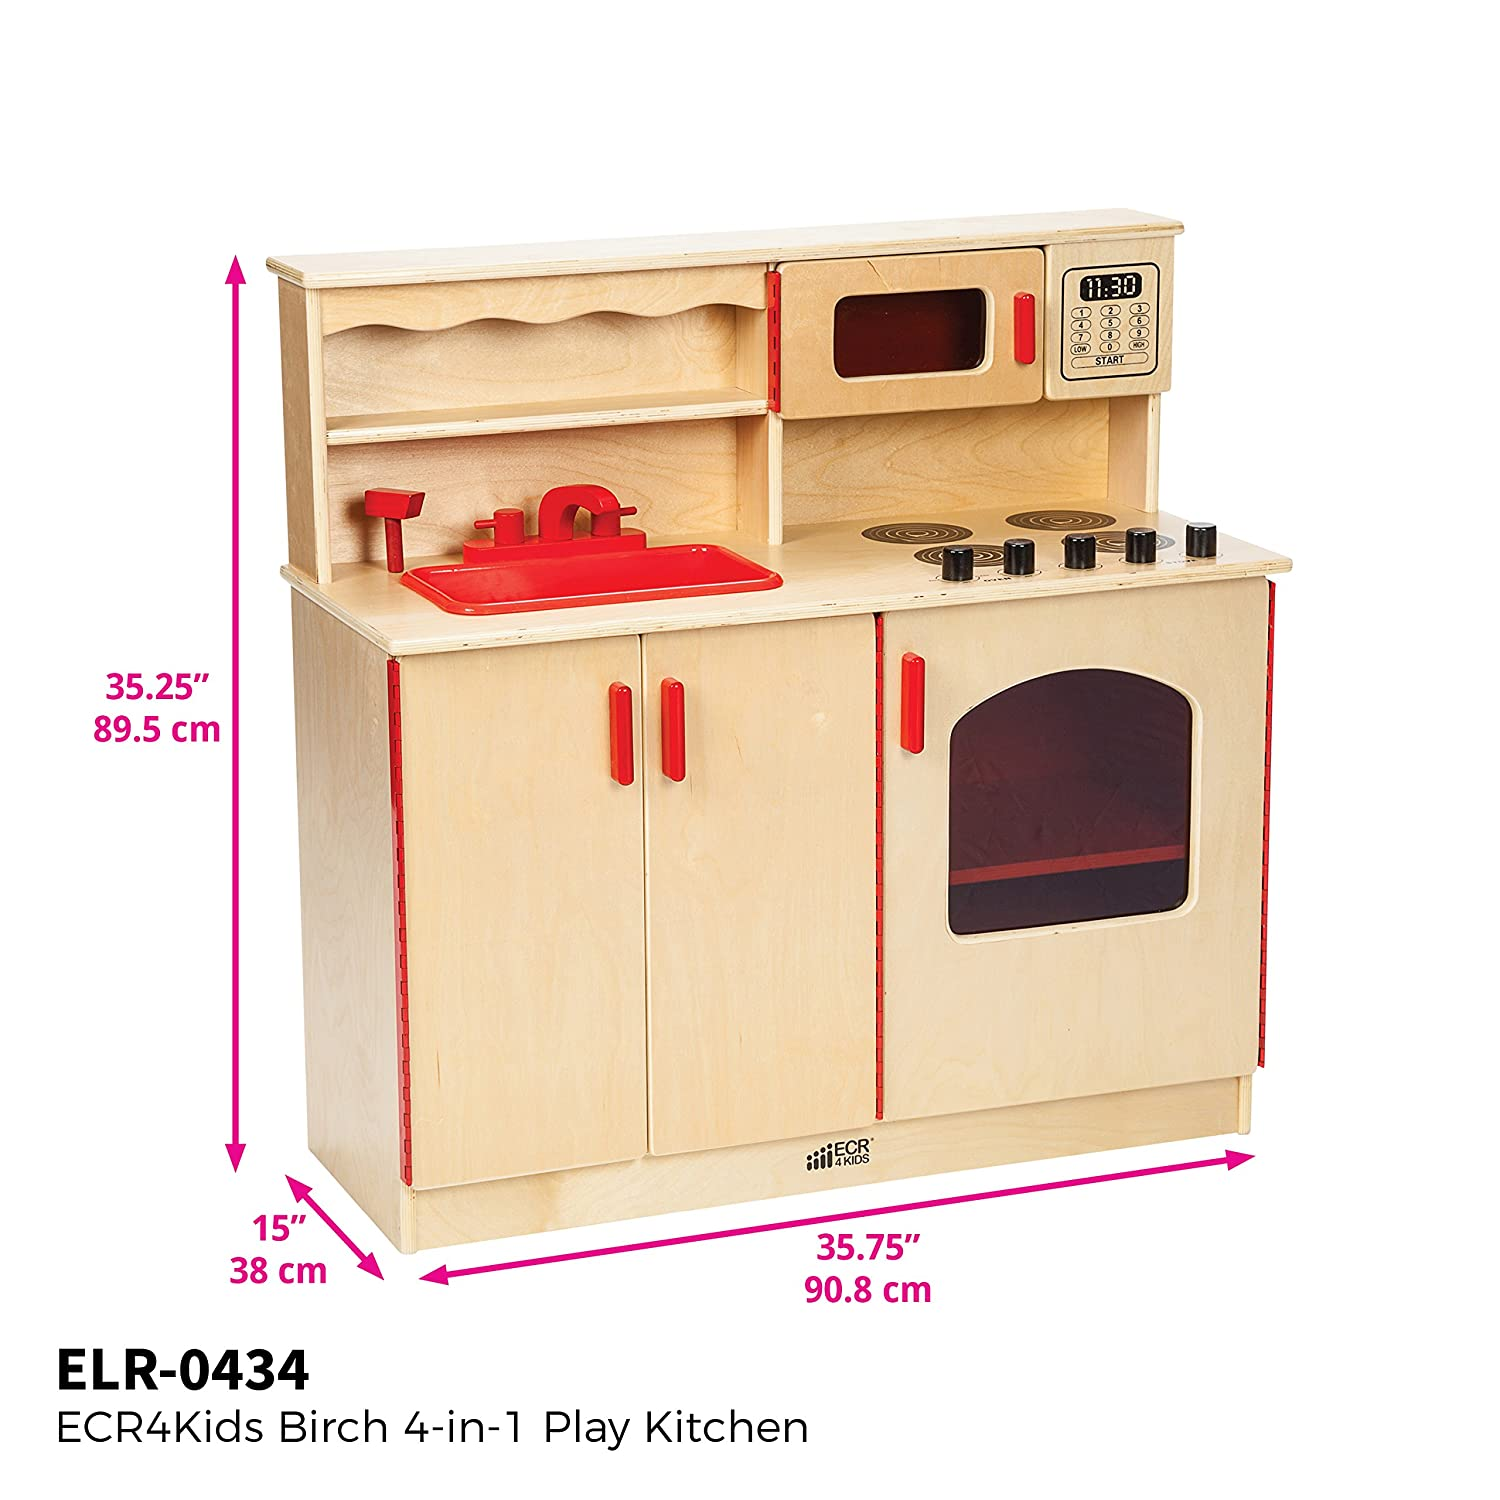 ECR4Kids Birch Pretend Play 4-in-1 Kitchen Playset for Daycare, Natural